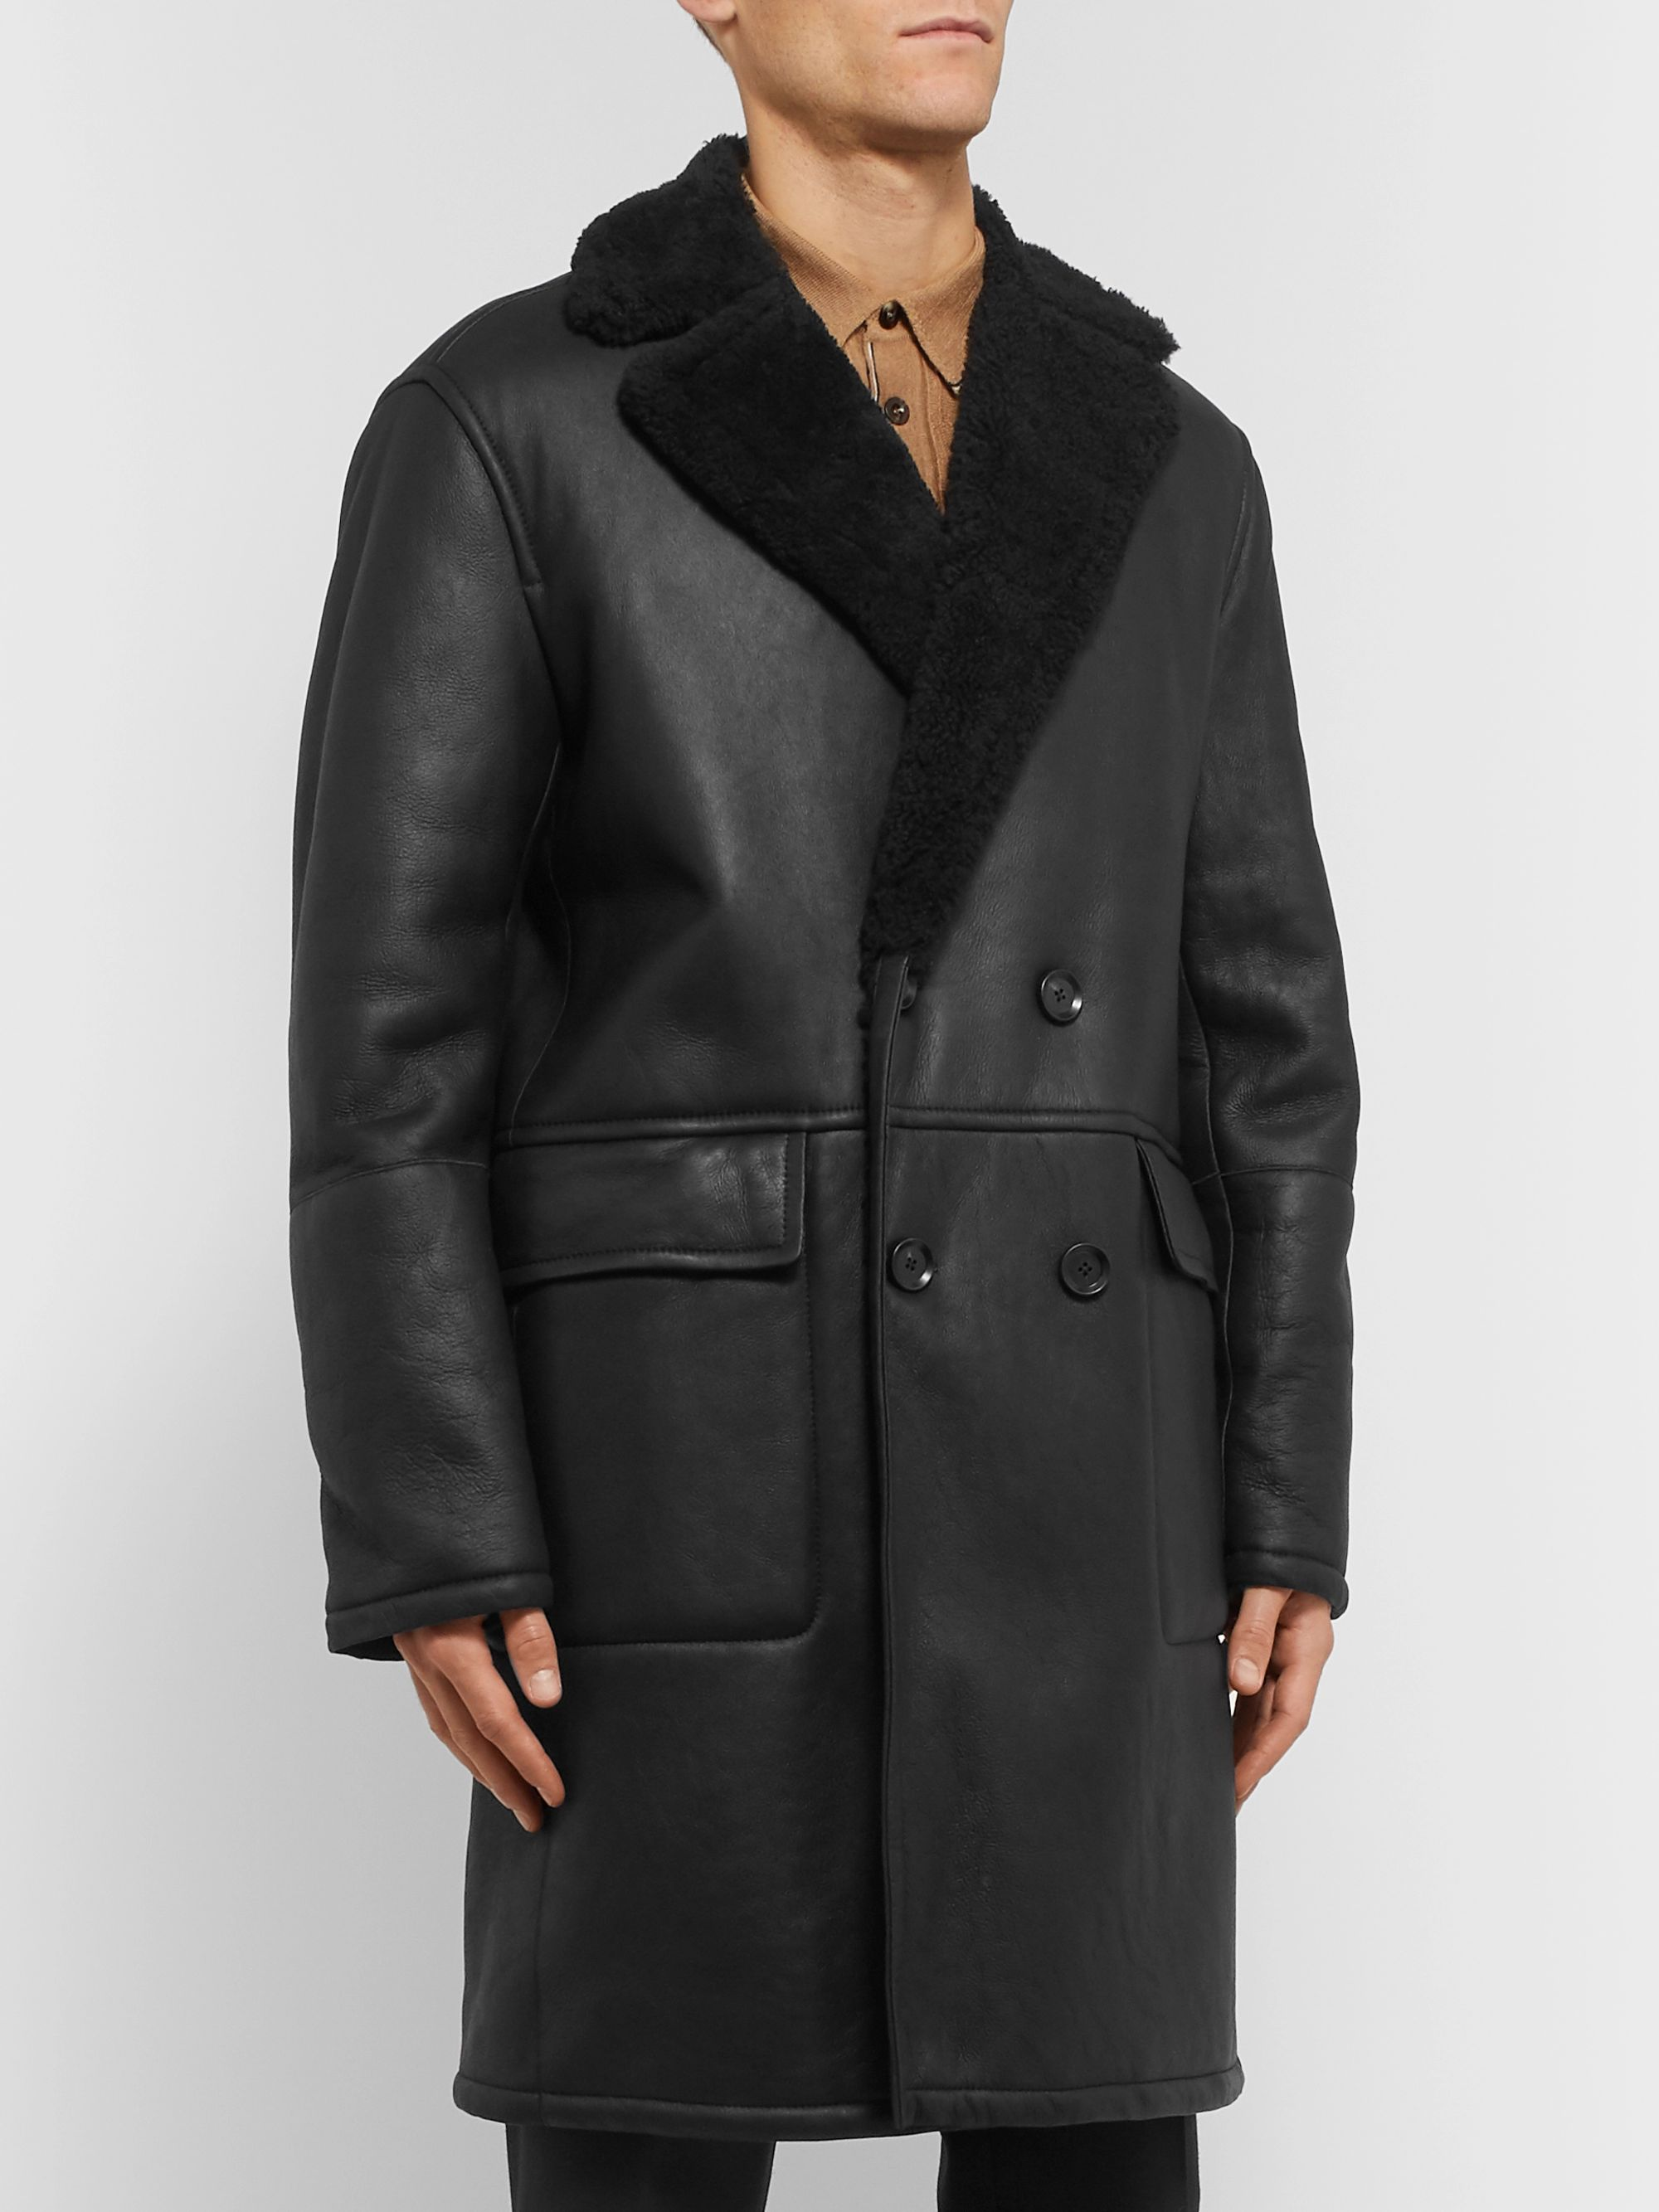 Mr P. Oversized Double-Breasted Shearling Coat